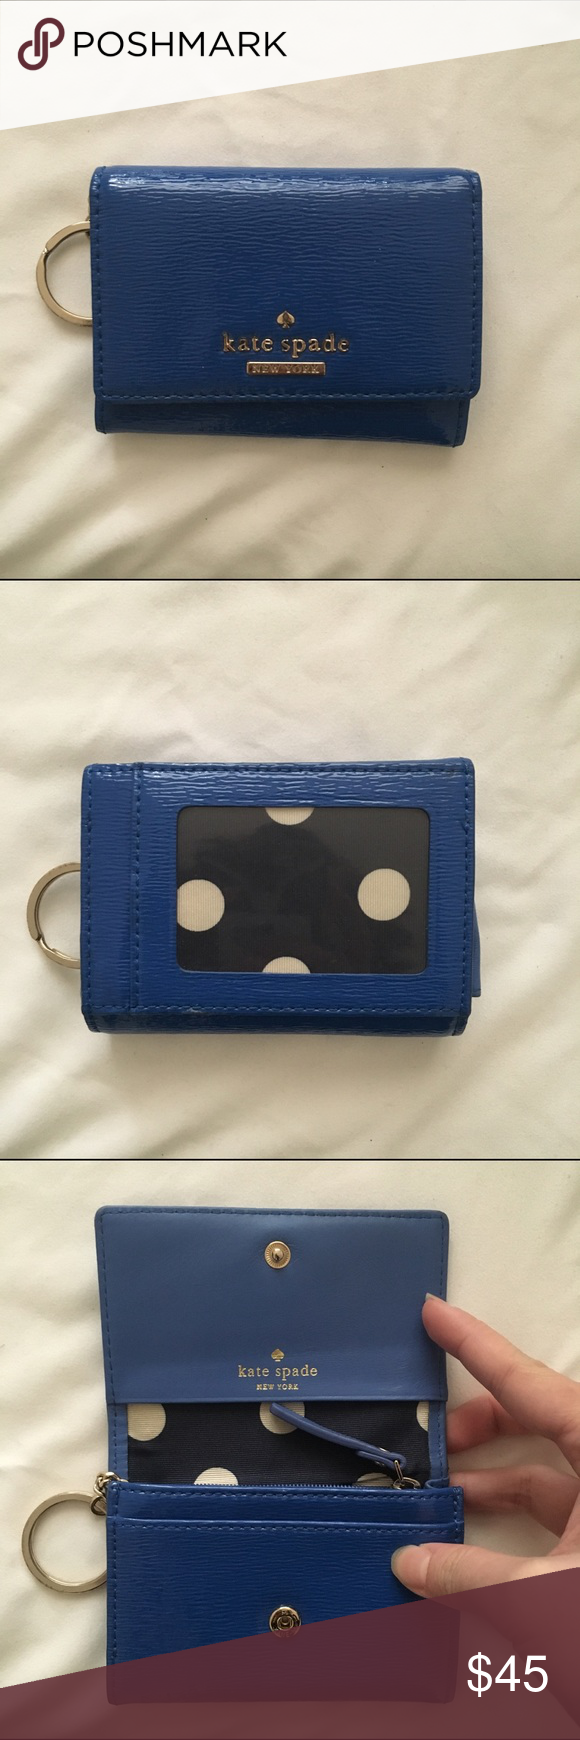 Kate Spade Blue Patent Leather Wallet Kate Spade wallet in good condition. Minor signs of wear. Really useful and practical wallet! Feel free to use offer button. kate spade Bags Wallets